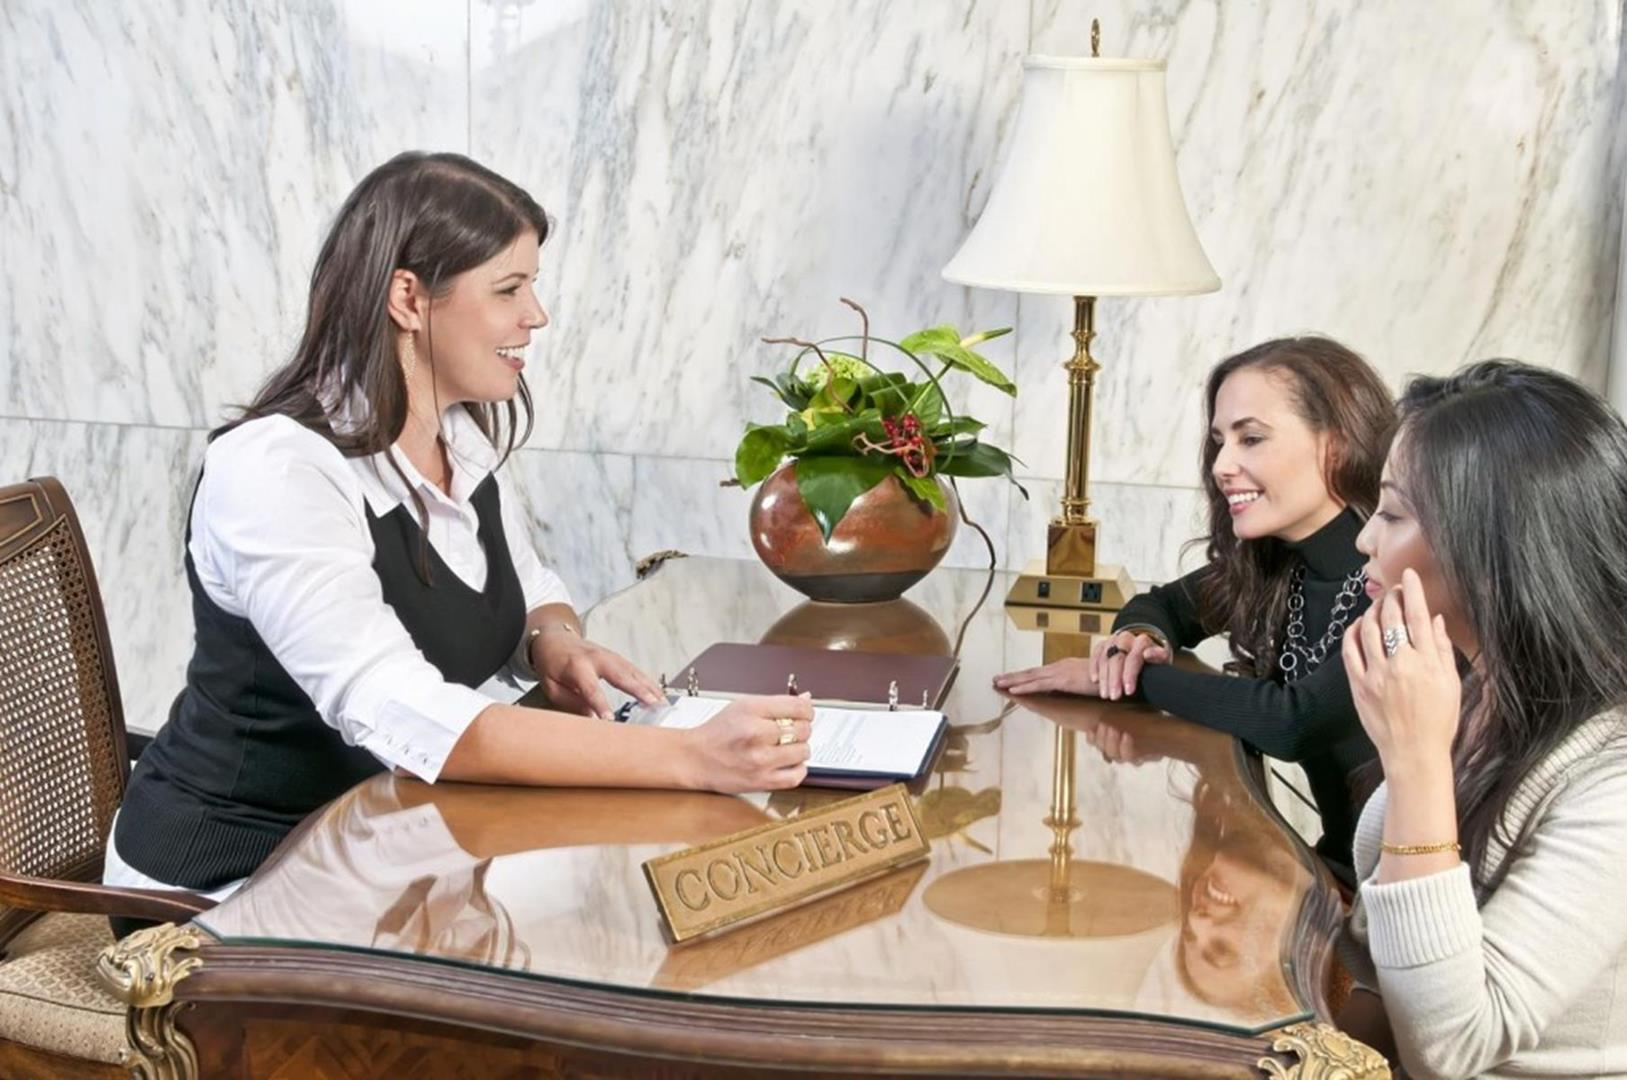 7 Things Every Reunion Planner Should Negotiate with Hotels